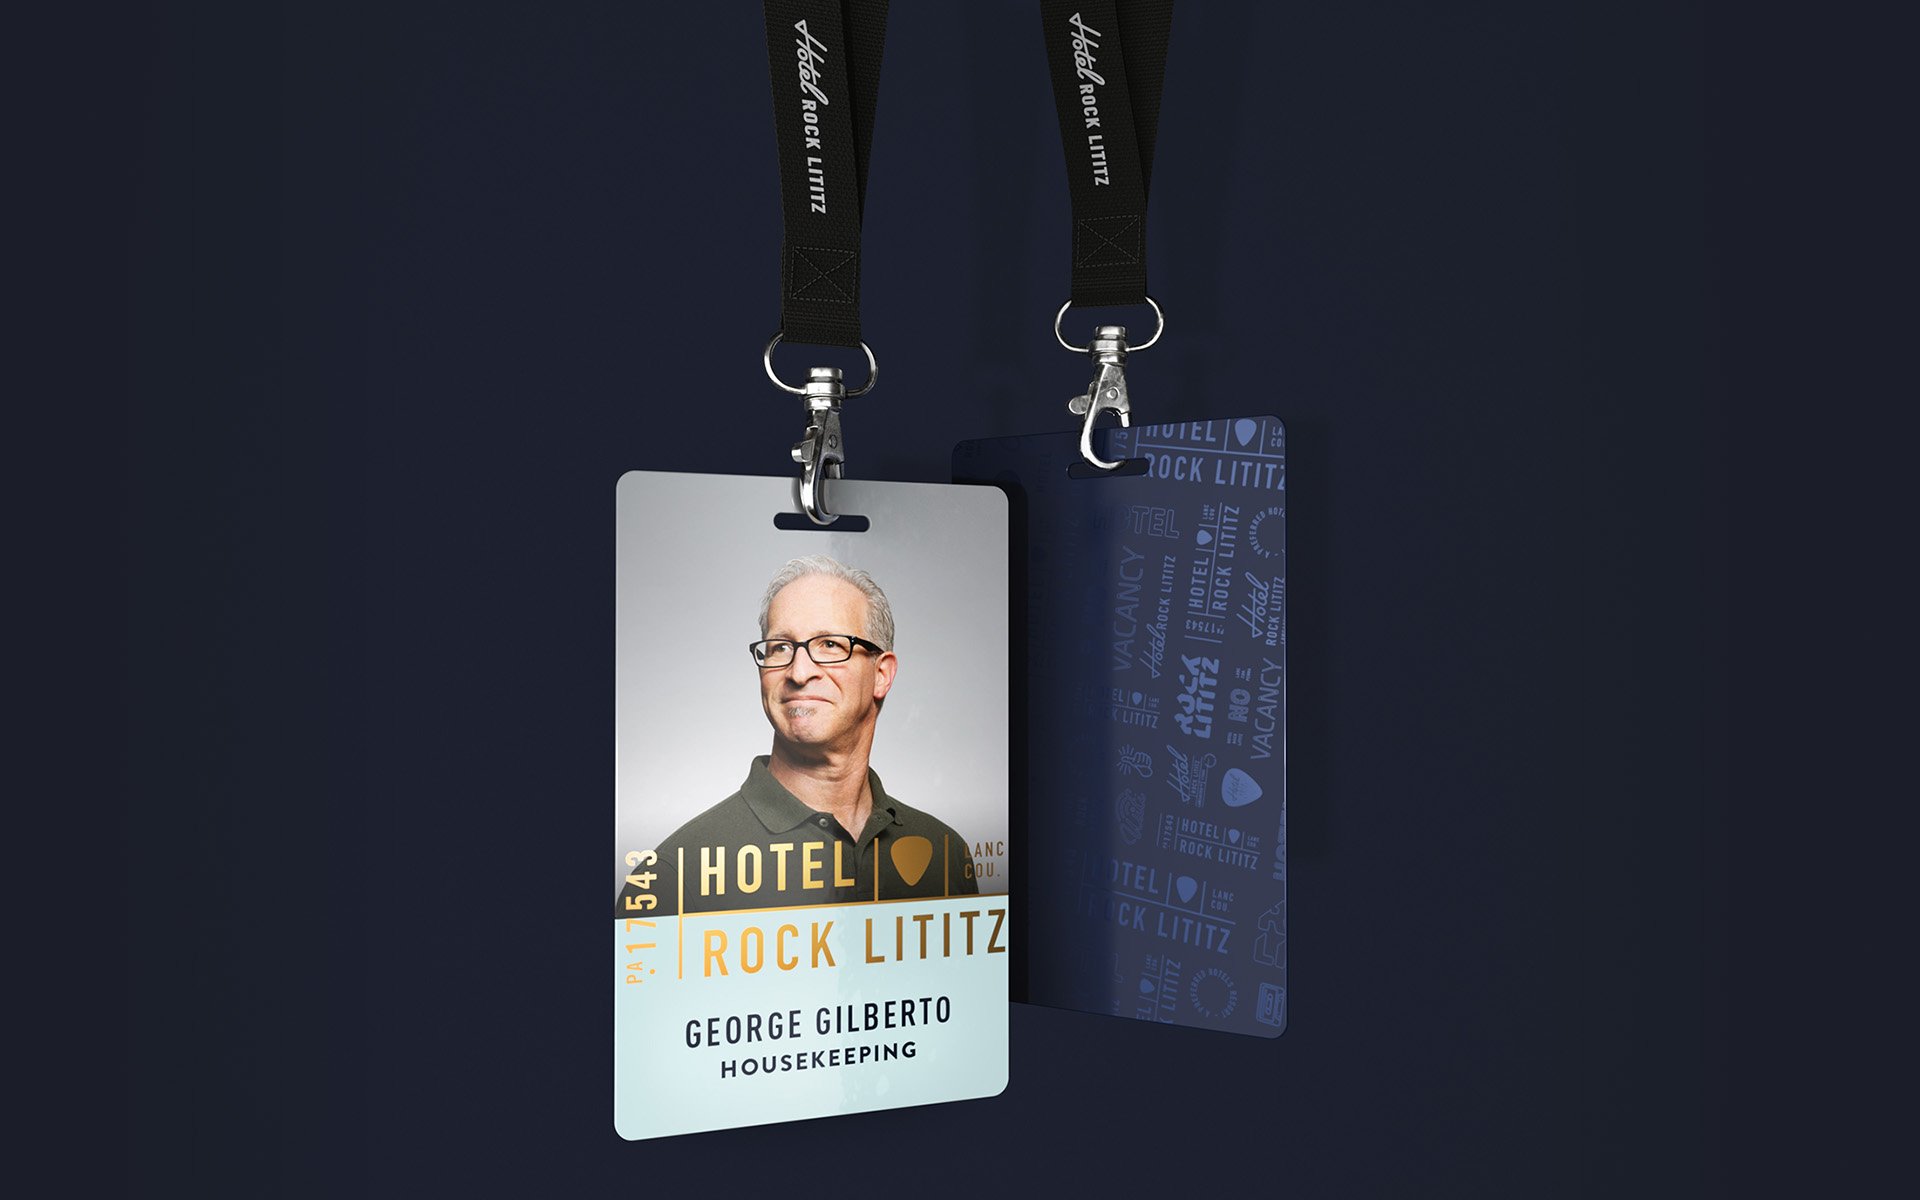 Hotel Rock Lititz ID badge design